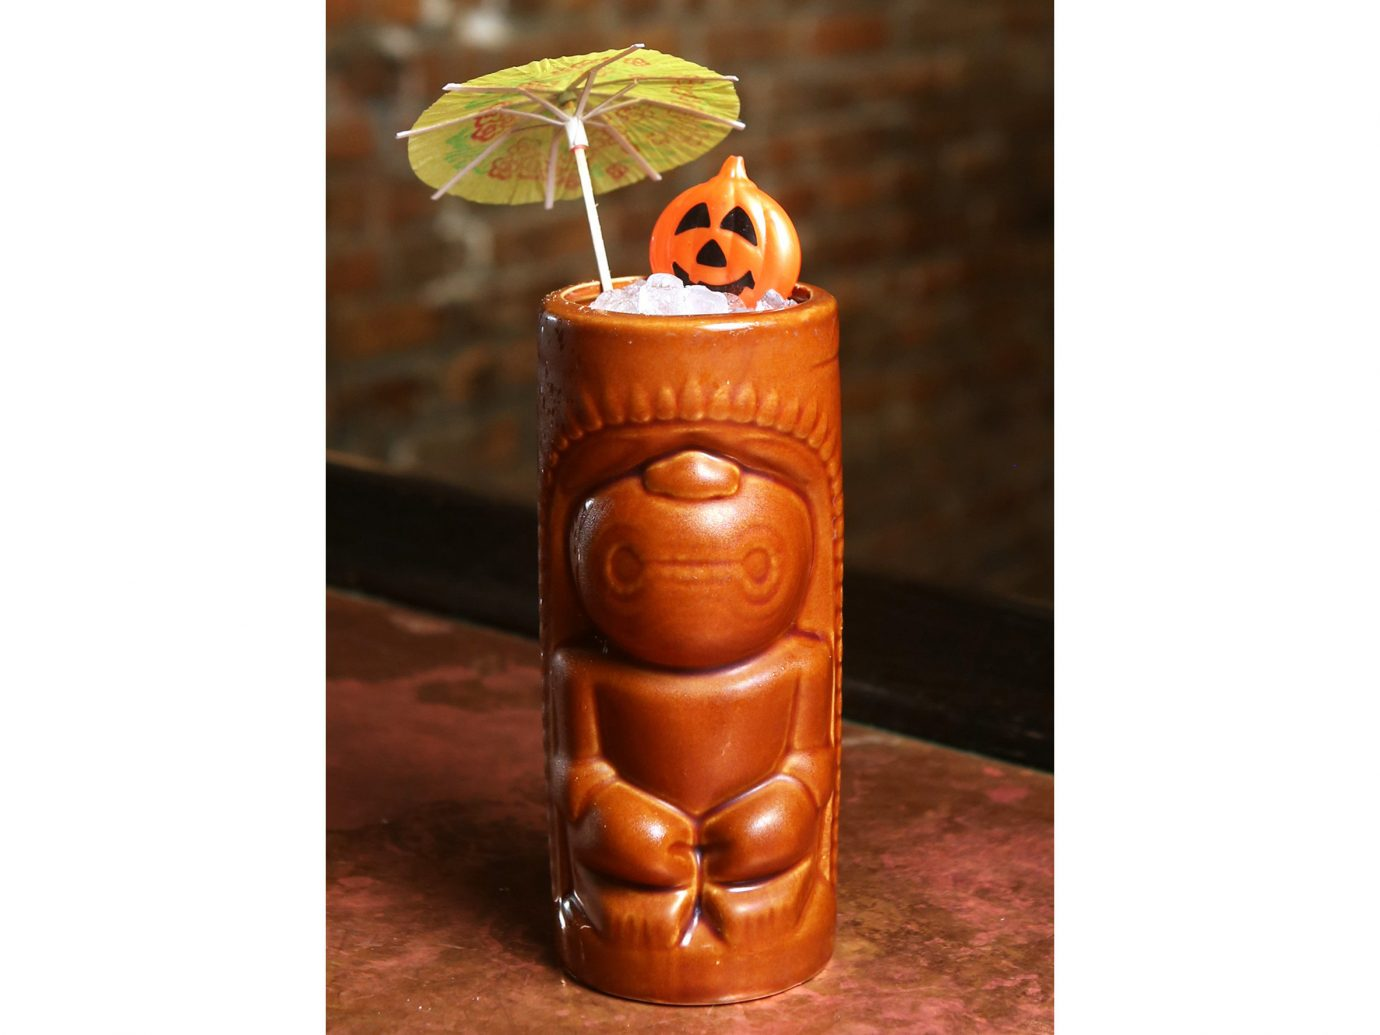 Food + Drink man made object candle tiki lighting bottle distilled beverage produce orange colored